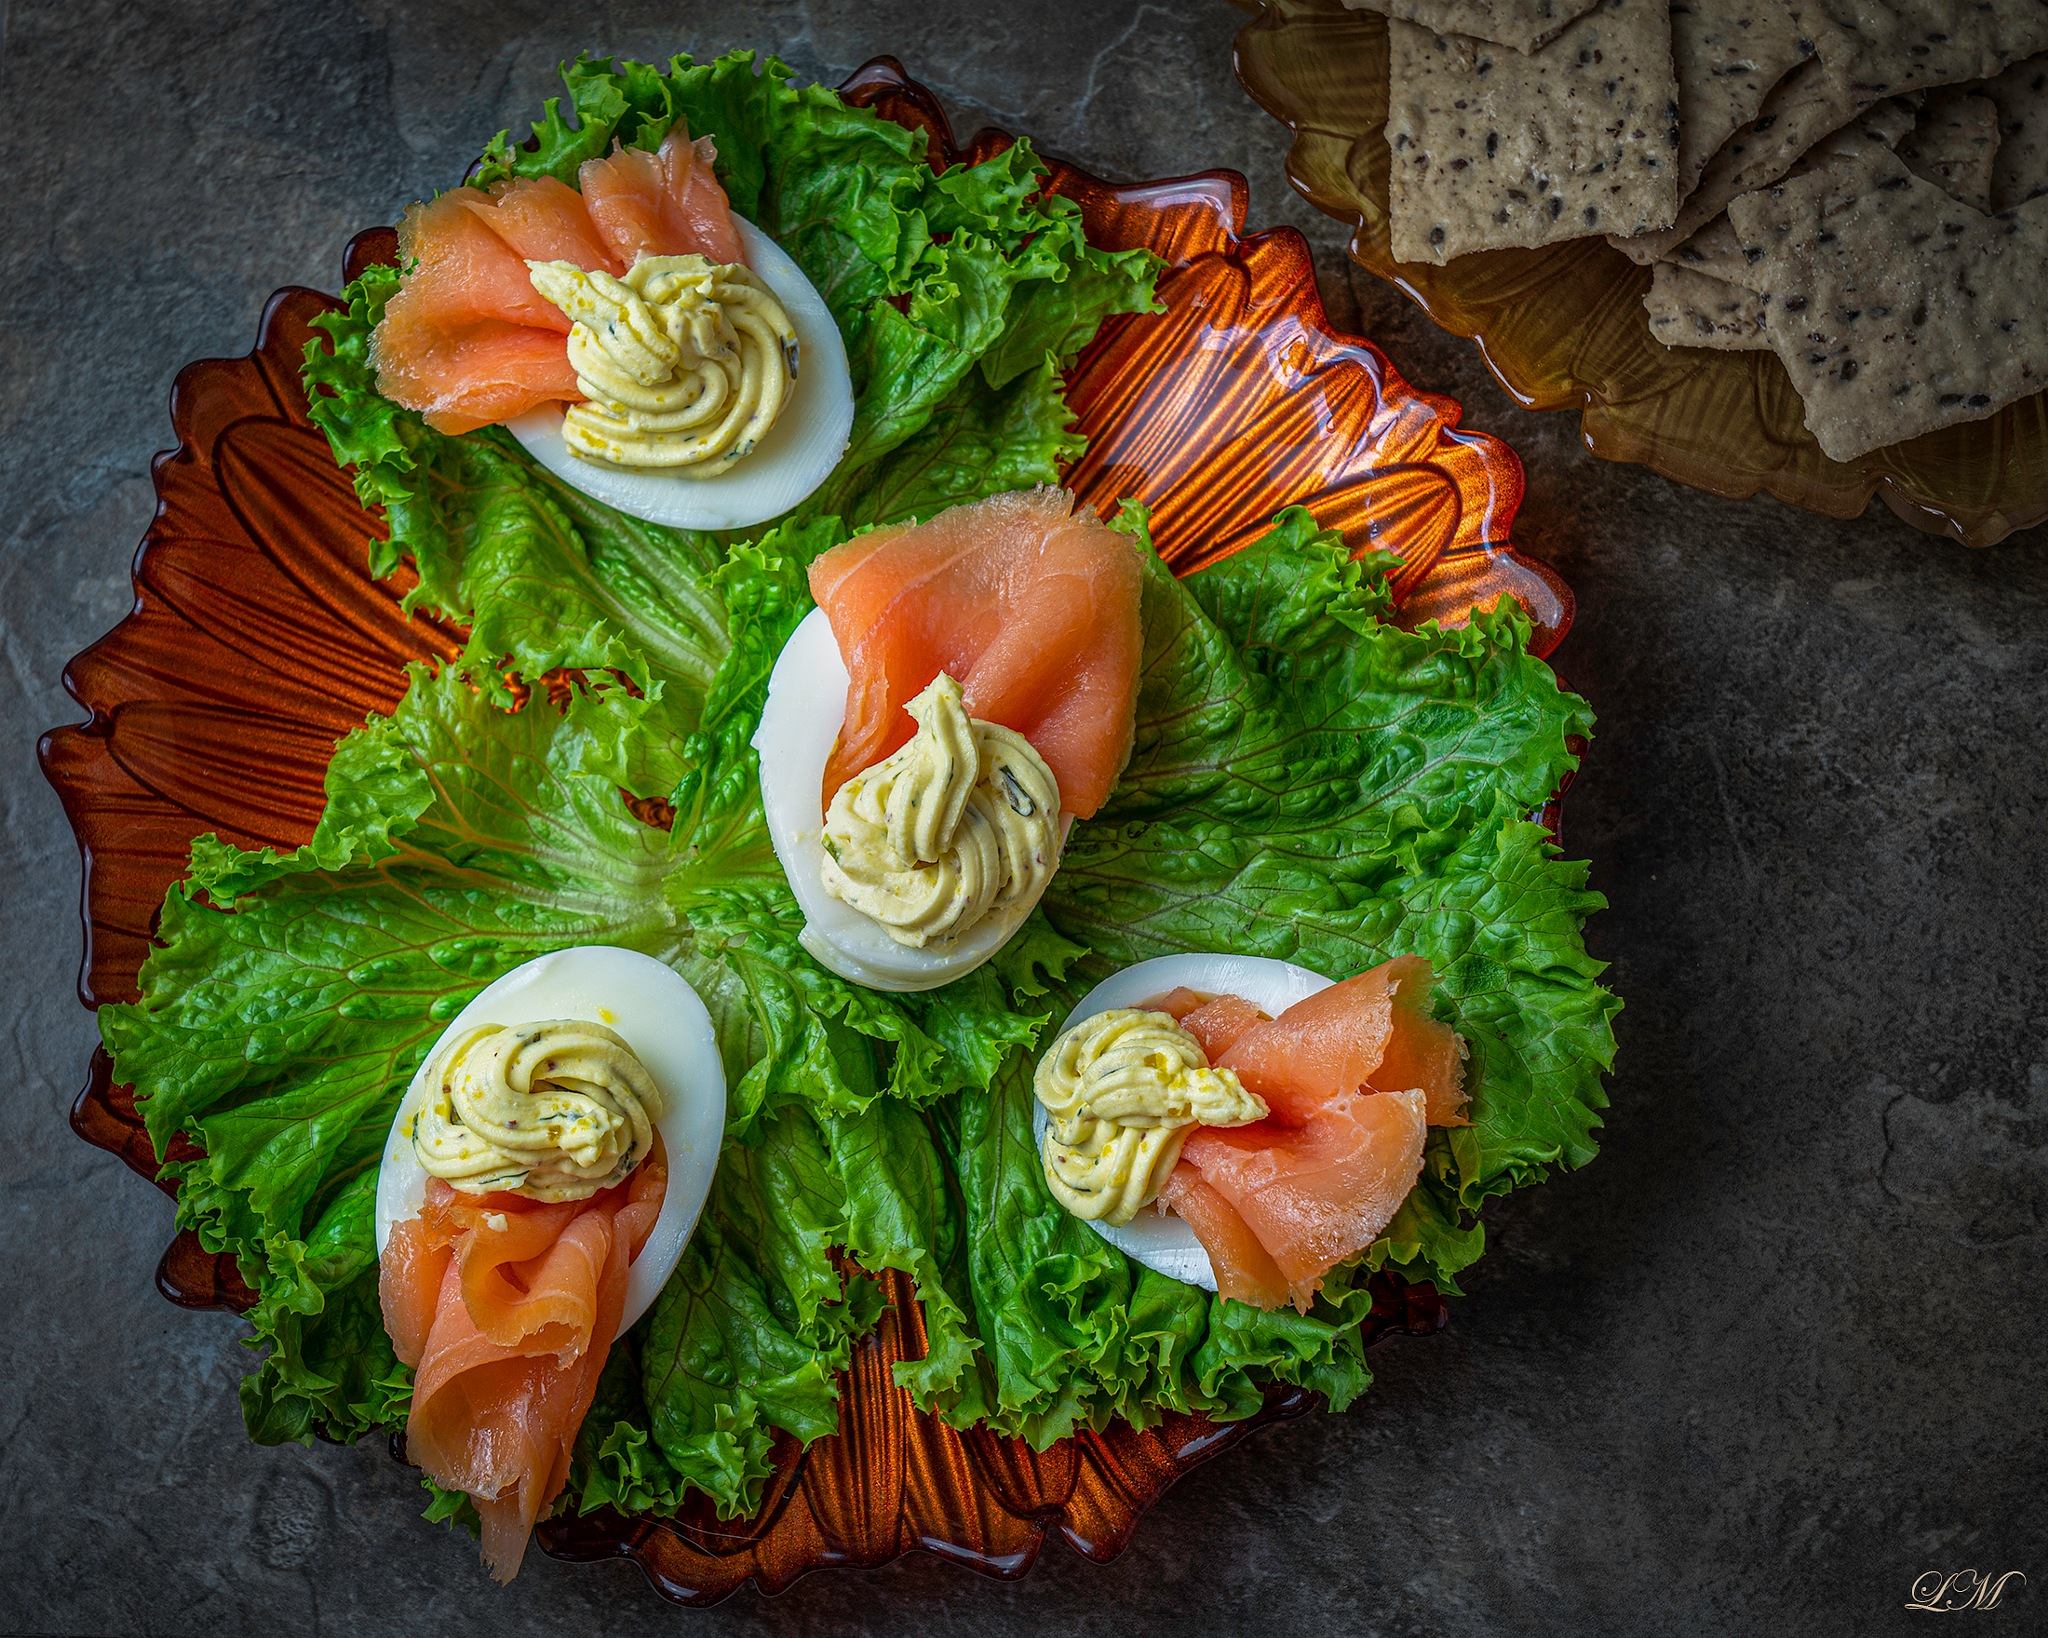 Eggs with Smoked Salmon on a Bed of Lettus by Lily Malor